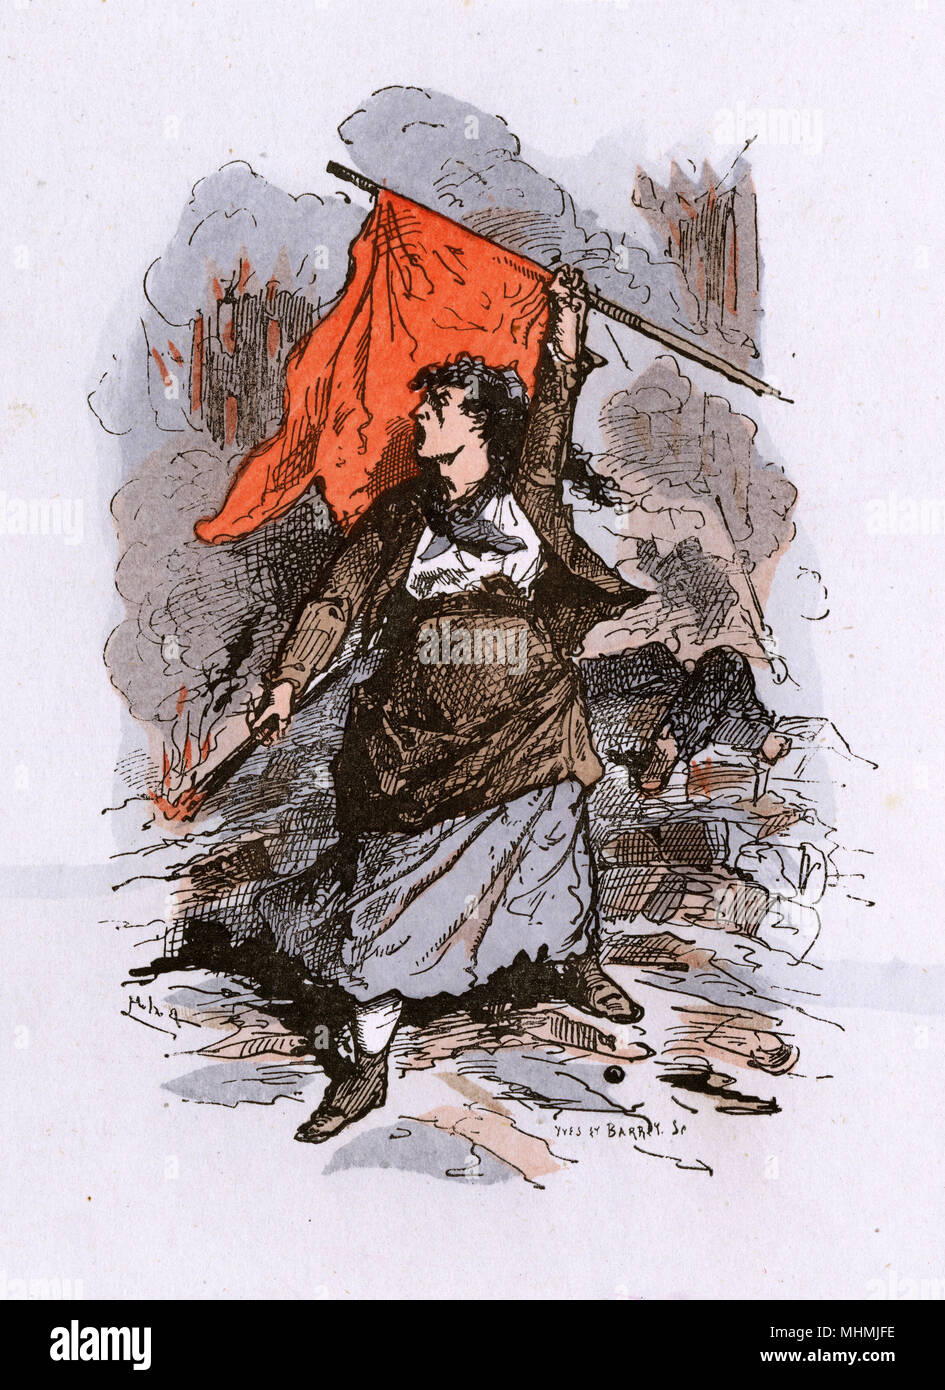 A defiant woman Communard holds aloft the red flag as  she stands on a barricade erected to defend Paris from government troops      Date: 1871 - Stock Image